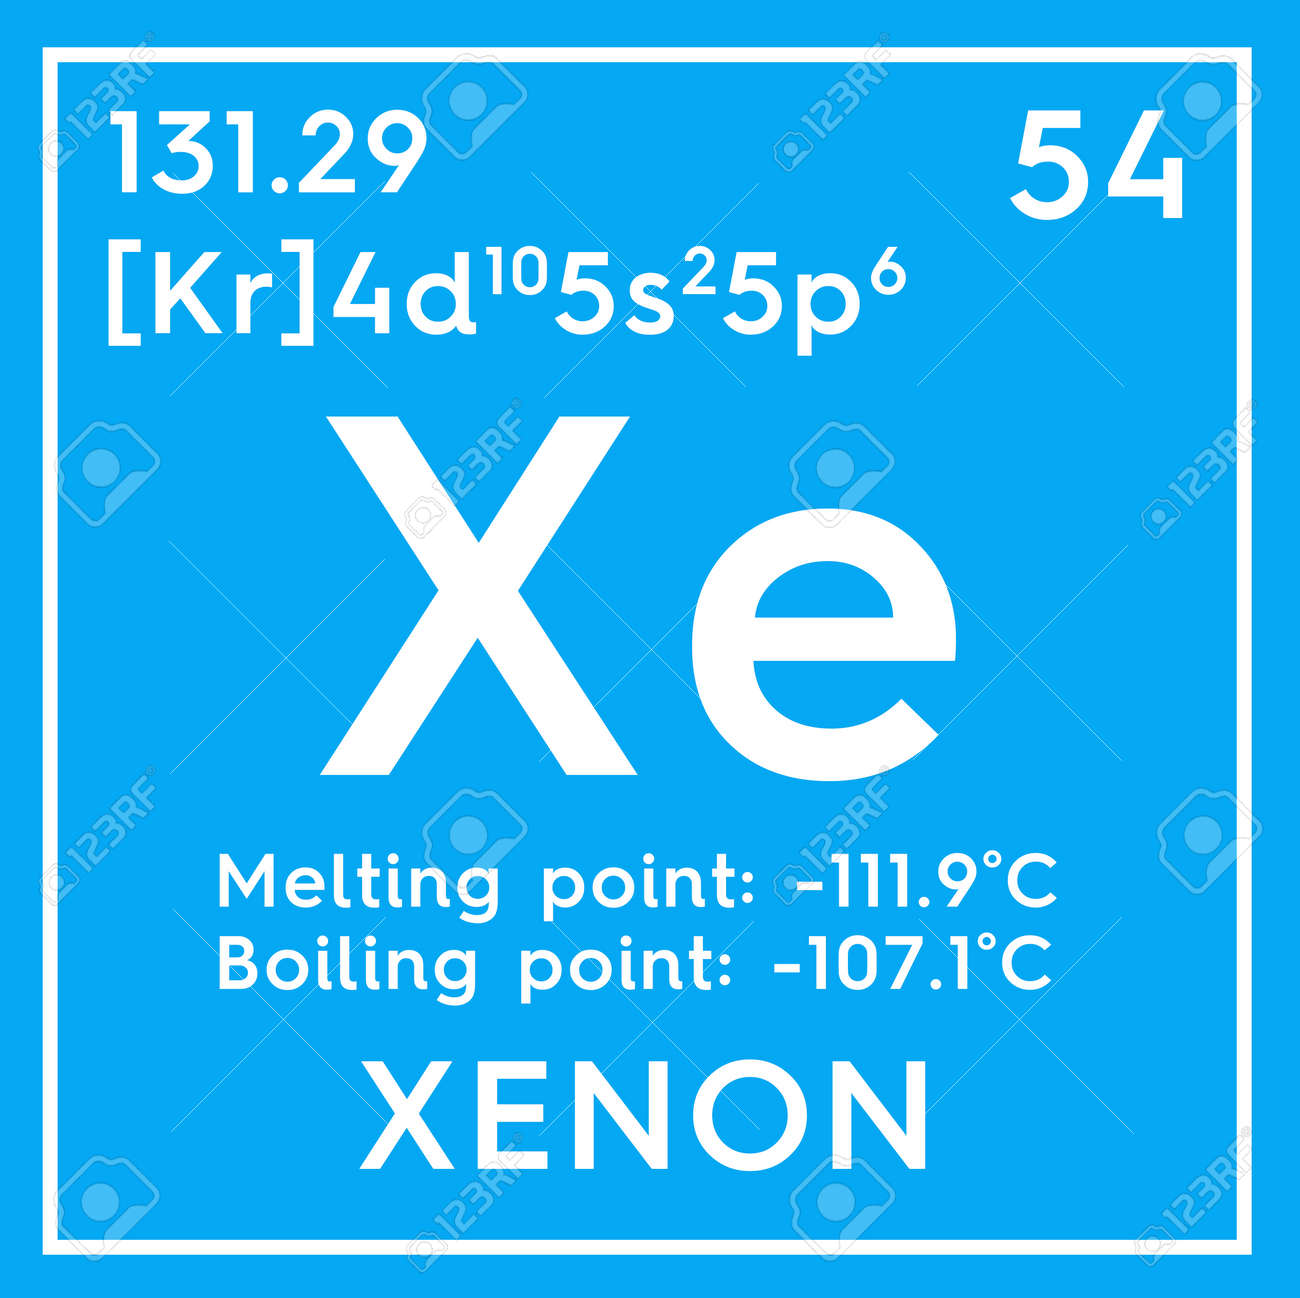 Xenon noble gases chemical element of mendeleevs periodic chemical element of mendeleevs periodic table xenon in square cube gamestrikefo Images